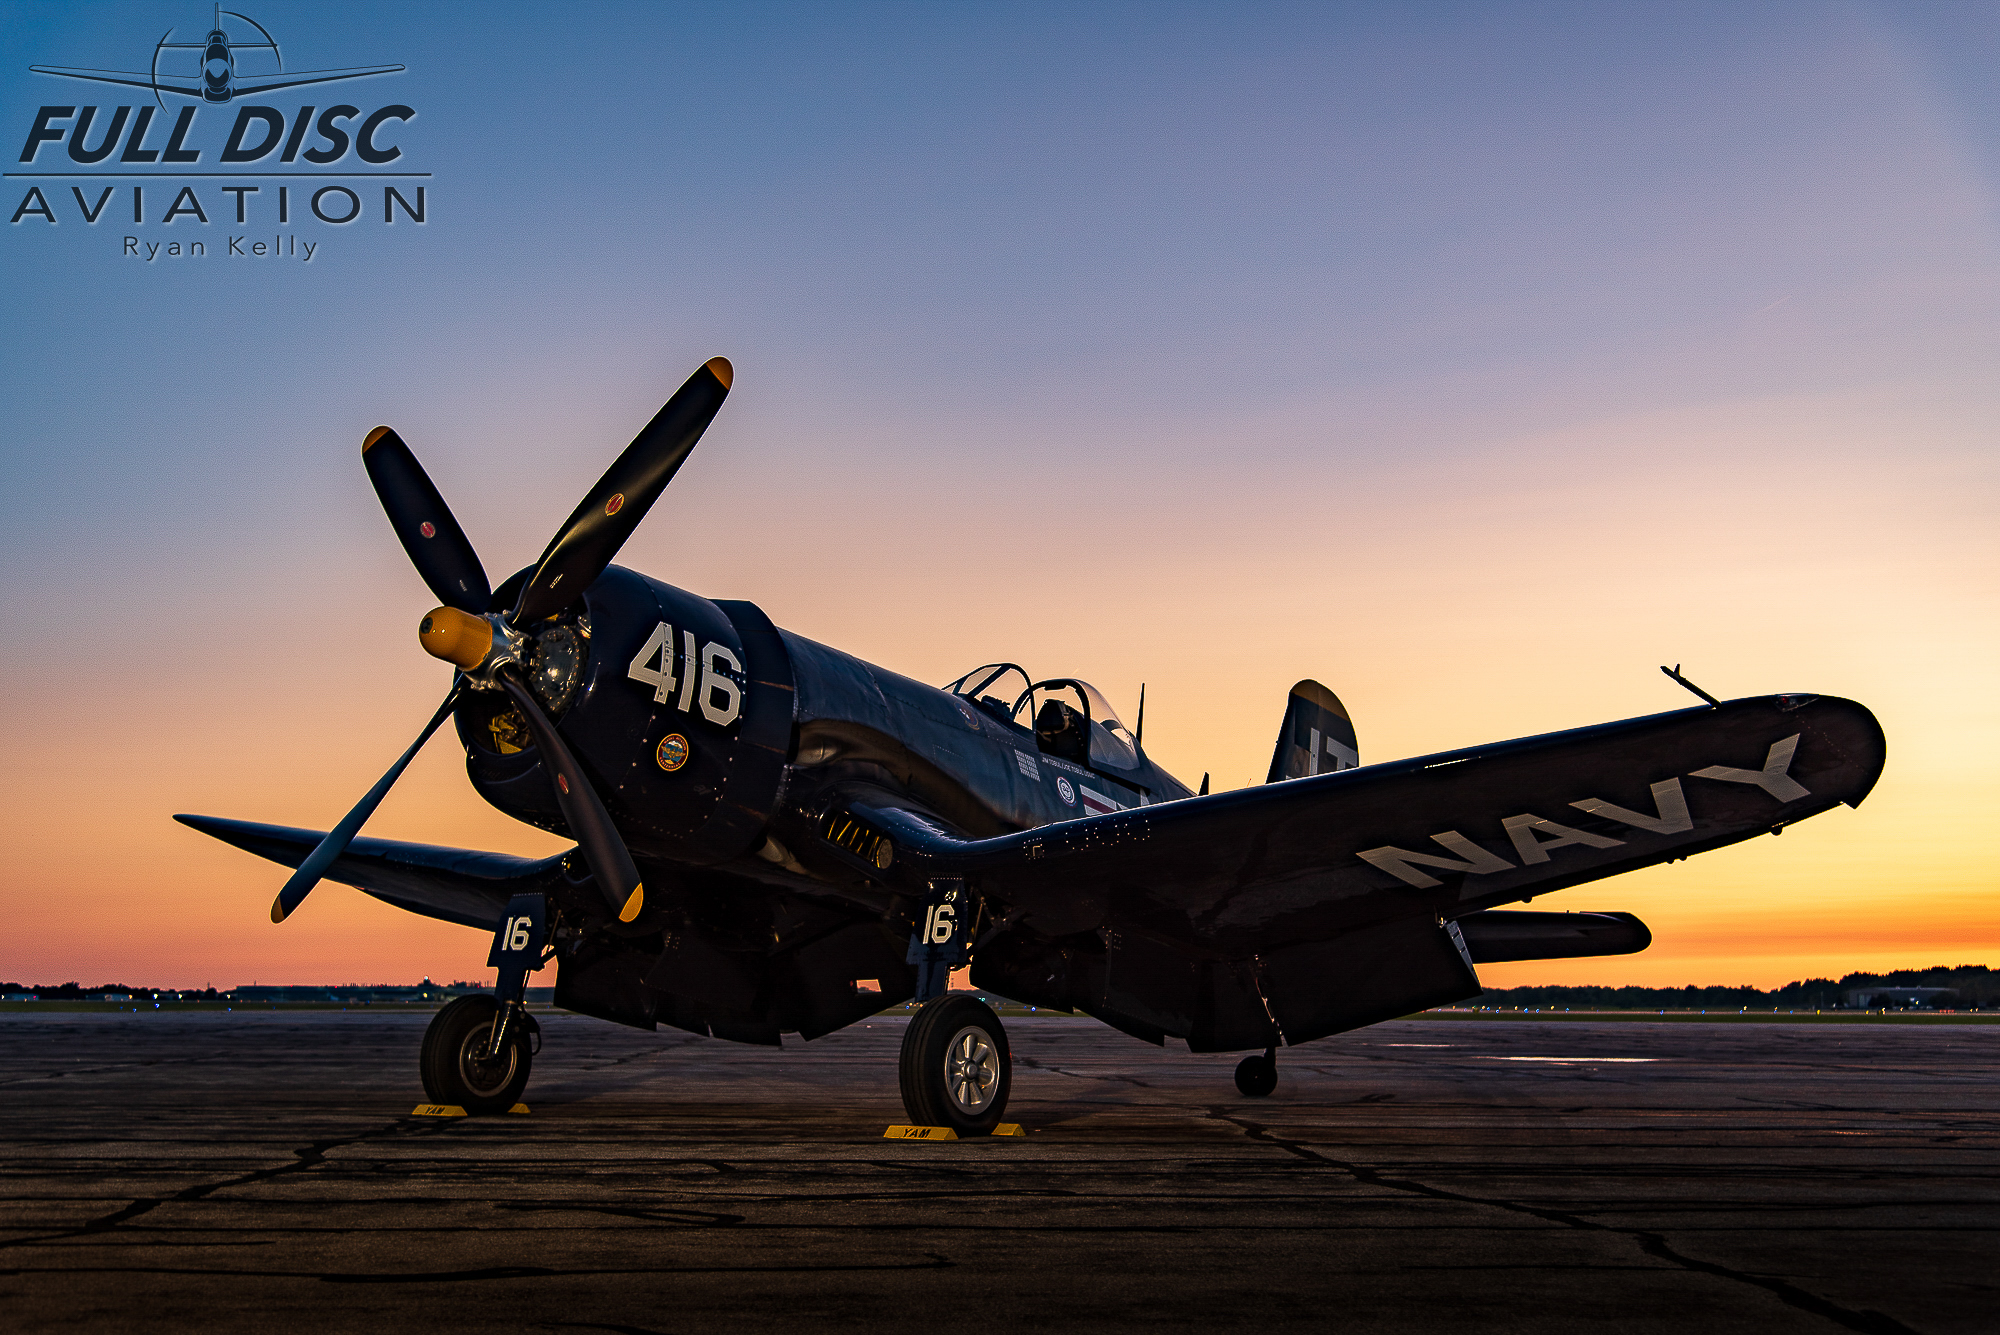 ClassOf45_FullDiscAviation_RyanKelly_August 01, 2019_16.jpg